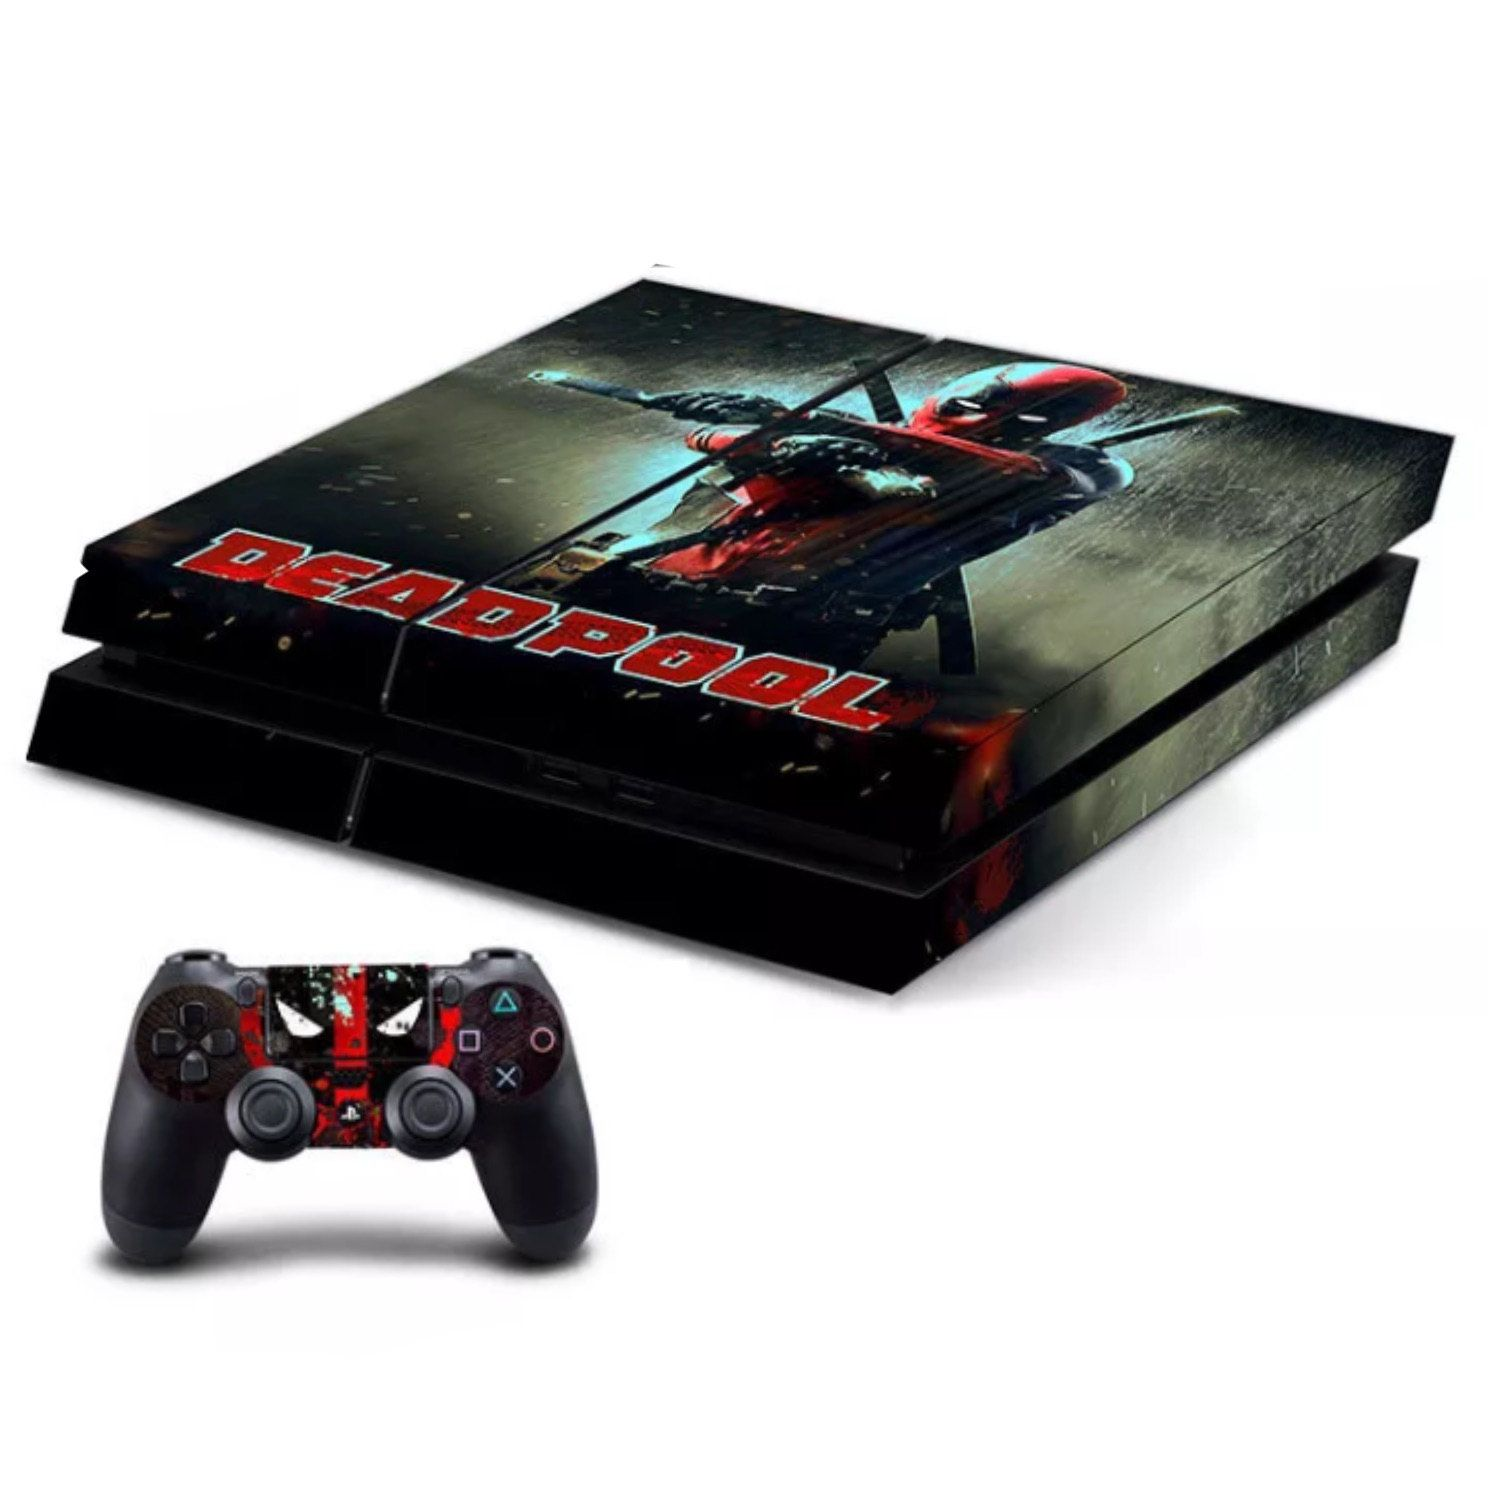 Skin Ps4 Pro Skull Dead Limited Edition Glossy Vinyl Decal Cover High Safety